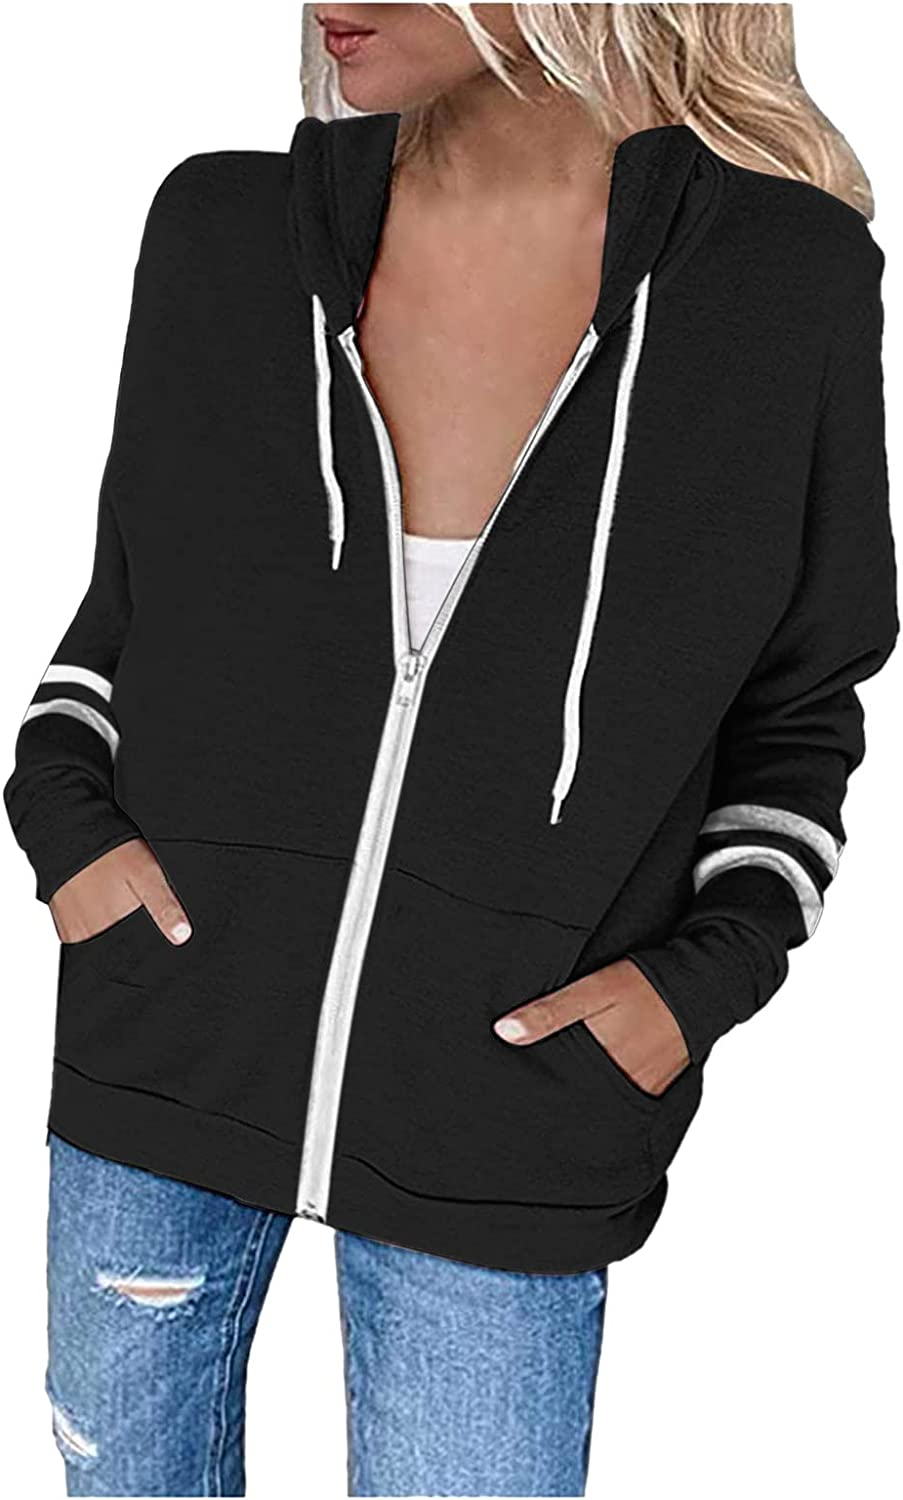 Hoodies Mesa Mall for Colorado Springs Mall Women Casual Solid Color Up Hooded Sweatshirts Zip S